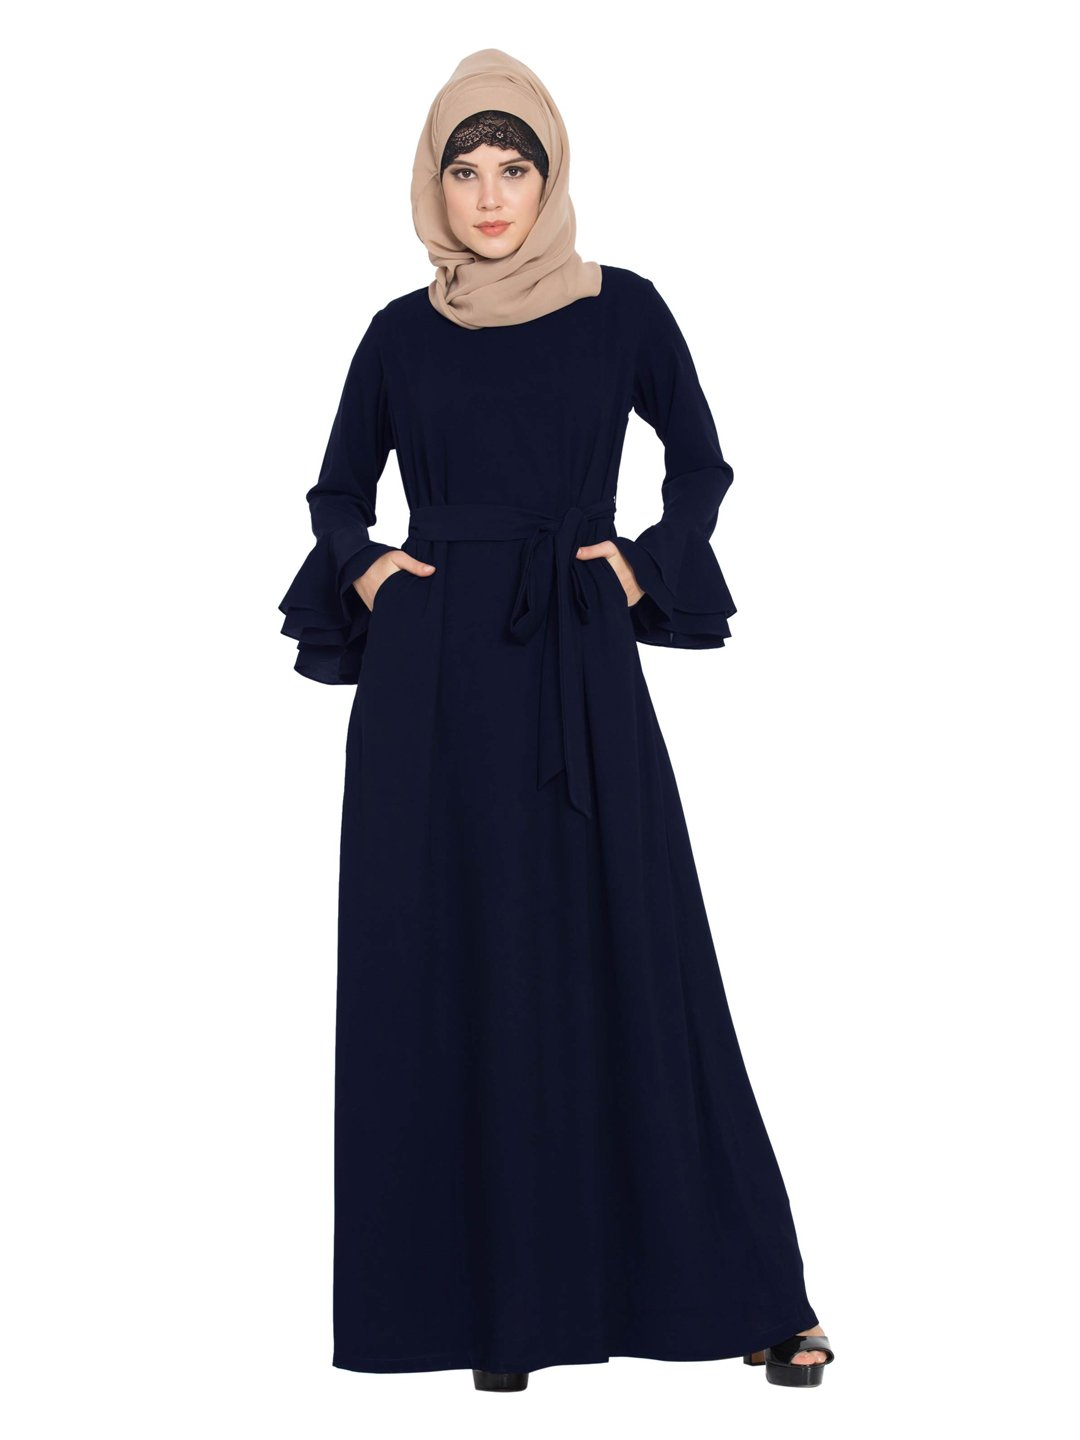 Nida Matte Abaya with Double Layers of Bell Sleeves and Matching Belt in Blue